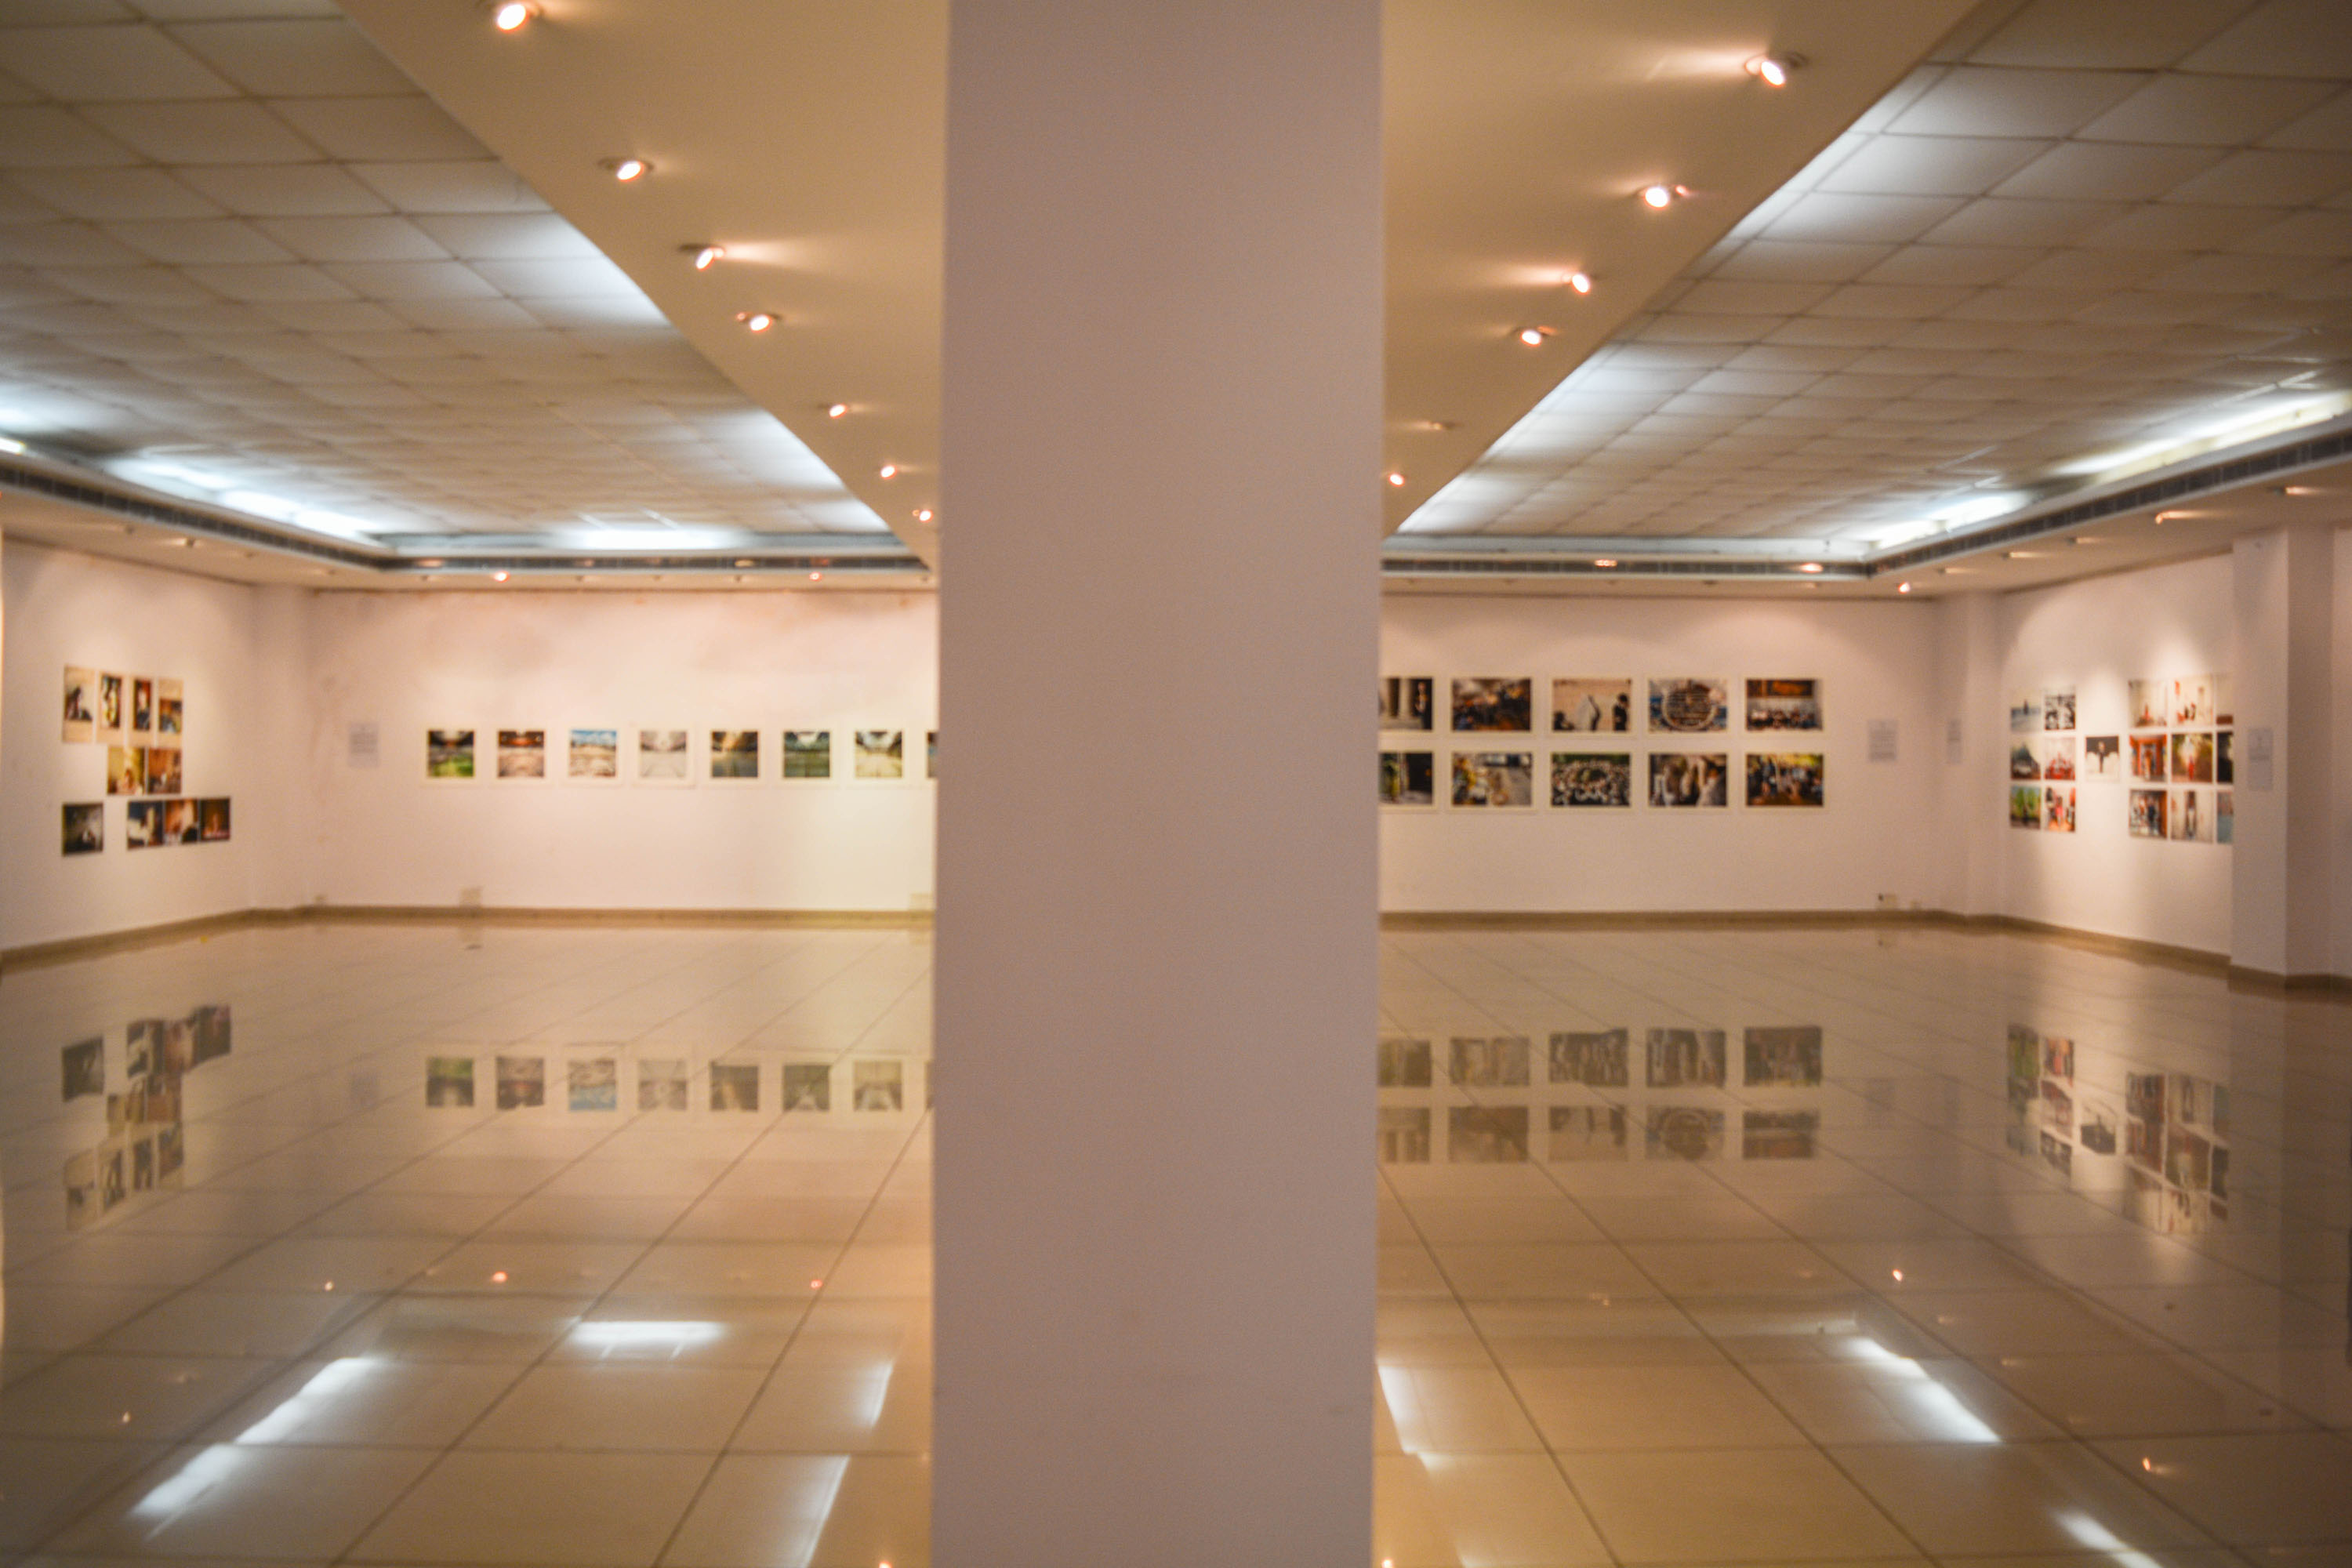 state art gallery hyderabad, free indian stock photos